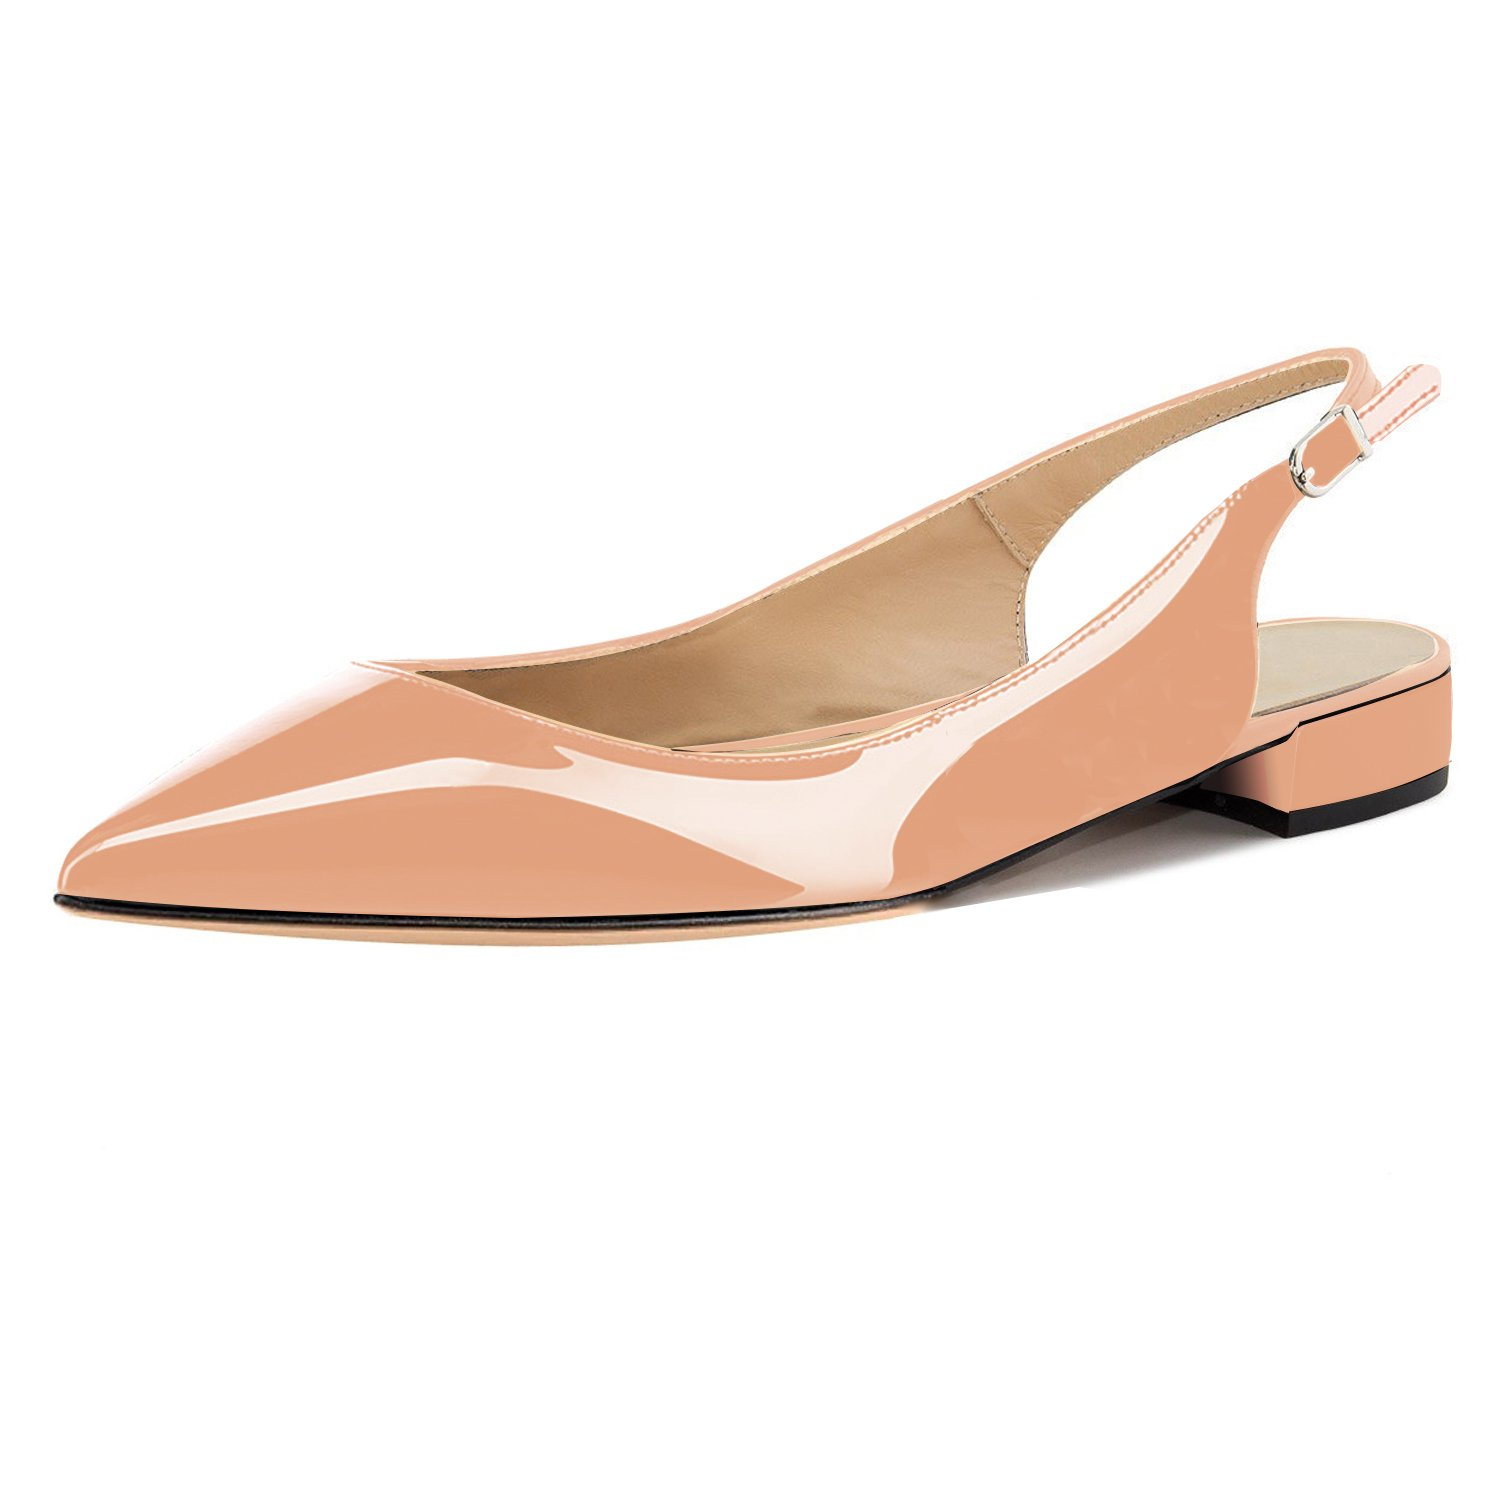 Eldof Women Low Heels Pumps | Pointed Toe Slingback Flat Pumps | 2cm Classic Elegante Court Shoes B07C2KDYYY 10 B(M) US|Patent Beige